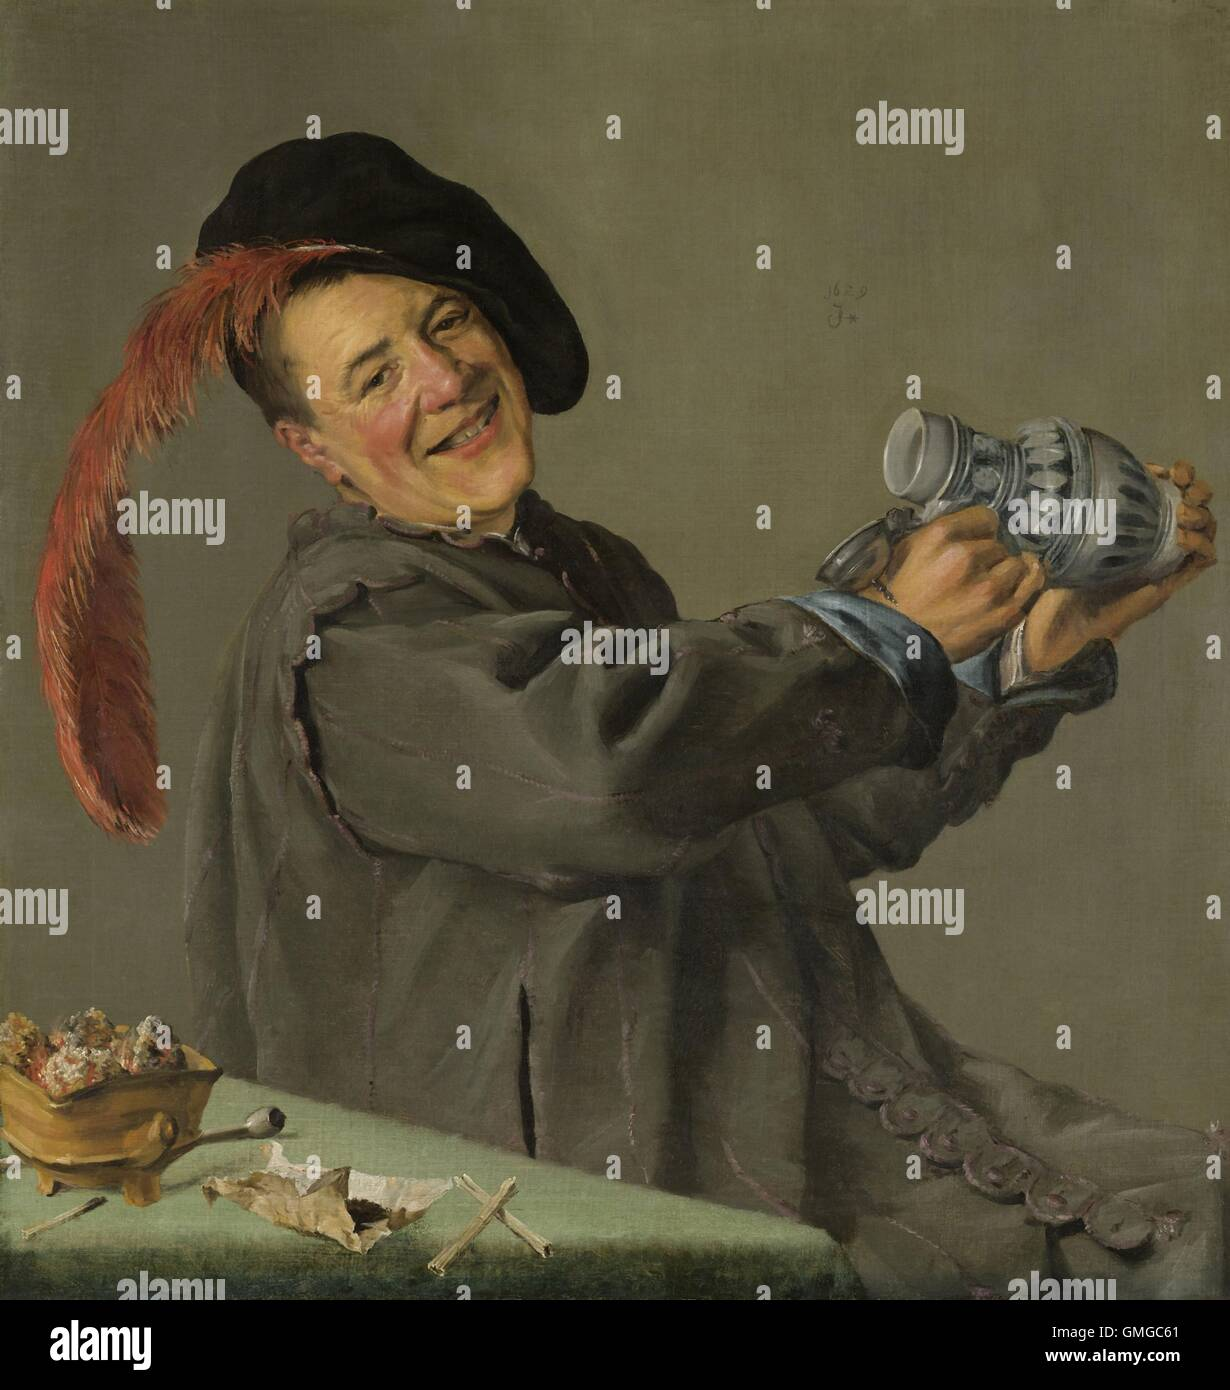 The Merry Drinker, by Judith Leyster, 1629, Dutch painting, oil on canvas. A smiling man raises his tankard, while - Stock Image